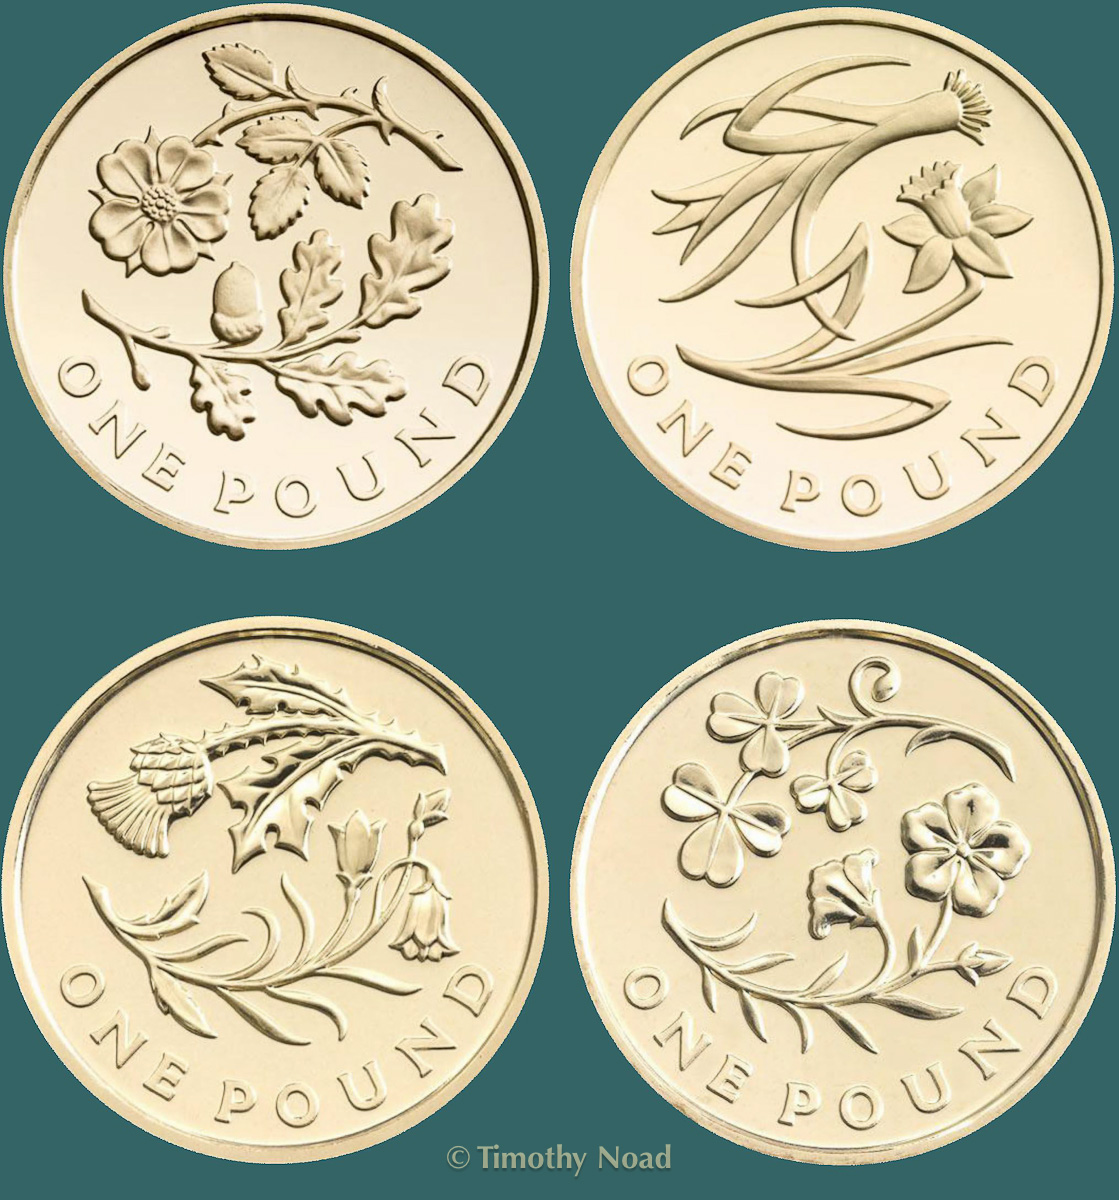 Floral Series of One Pound coins 2013-14 coins and medals